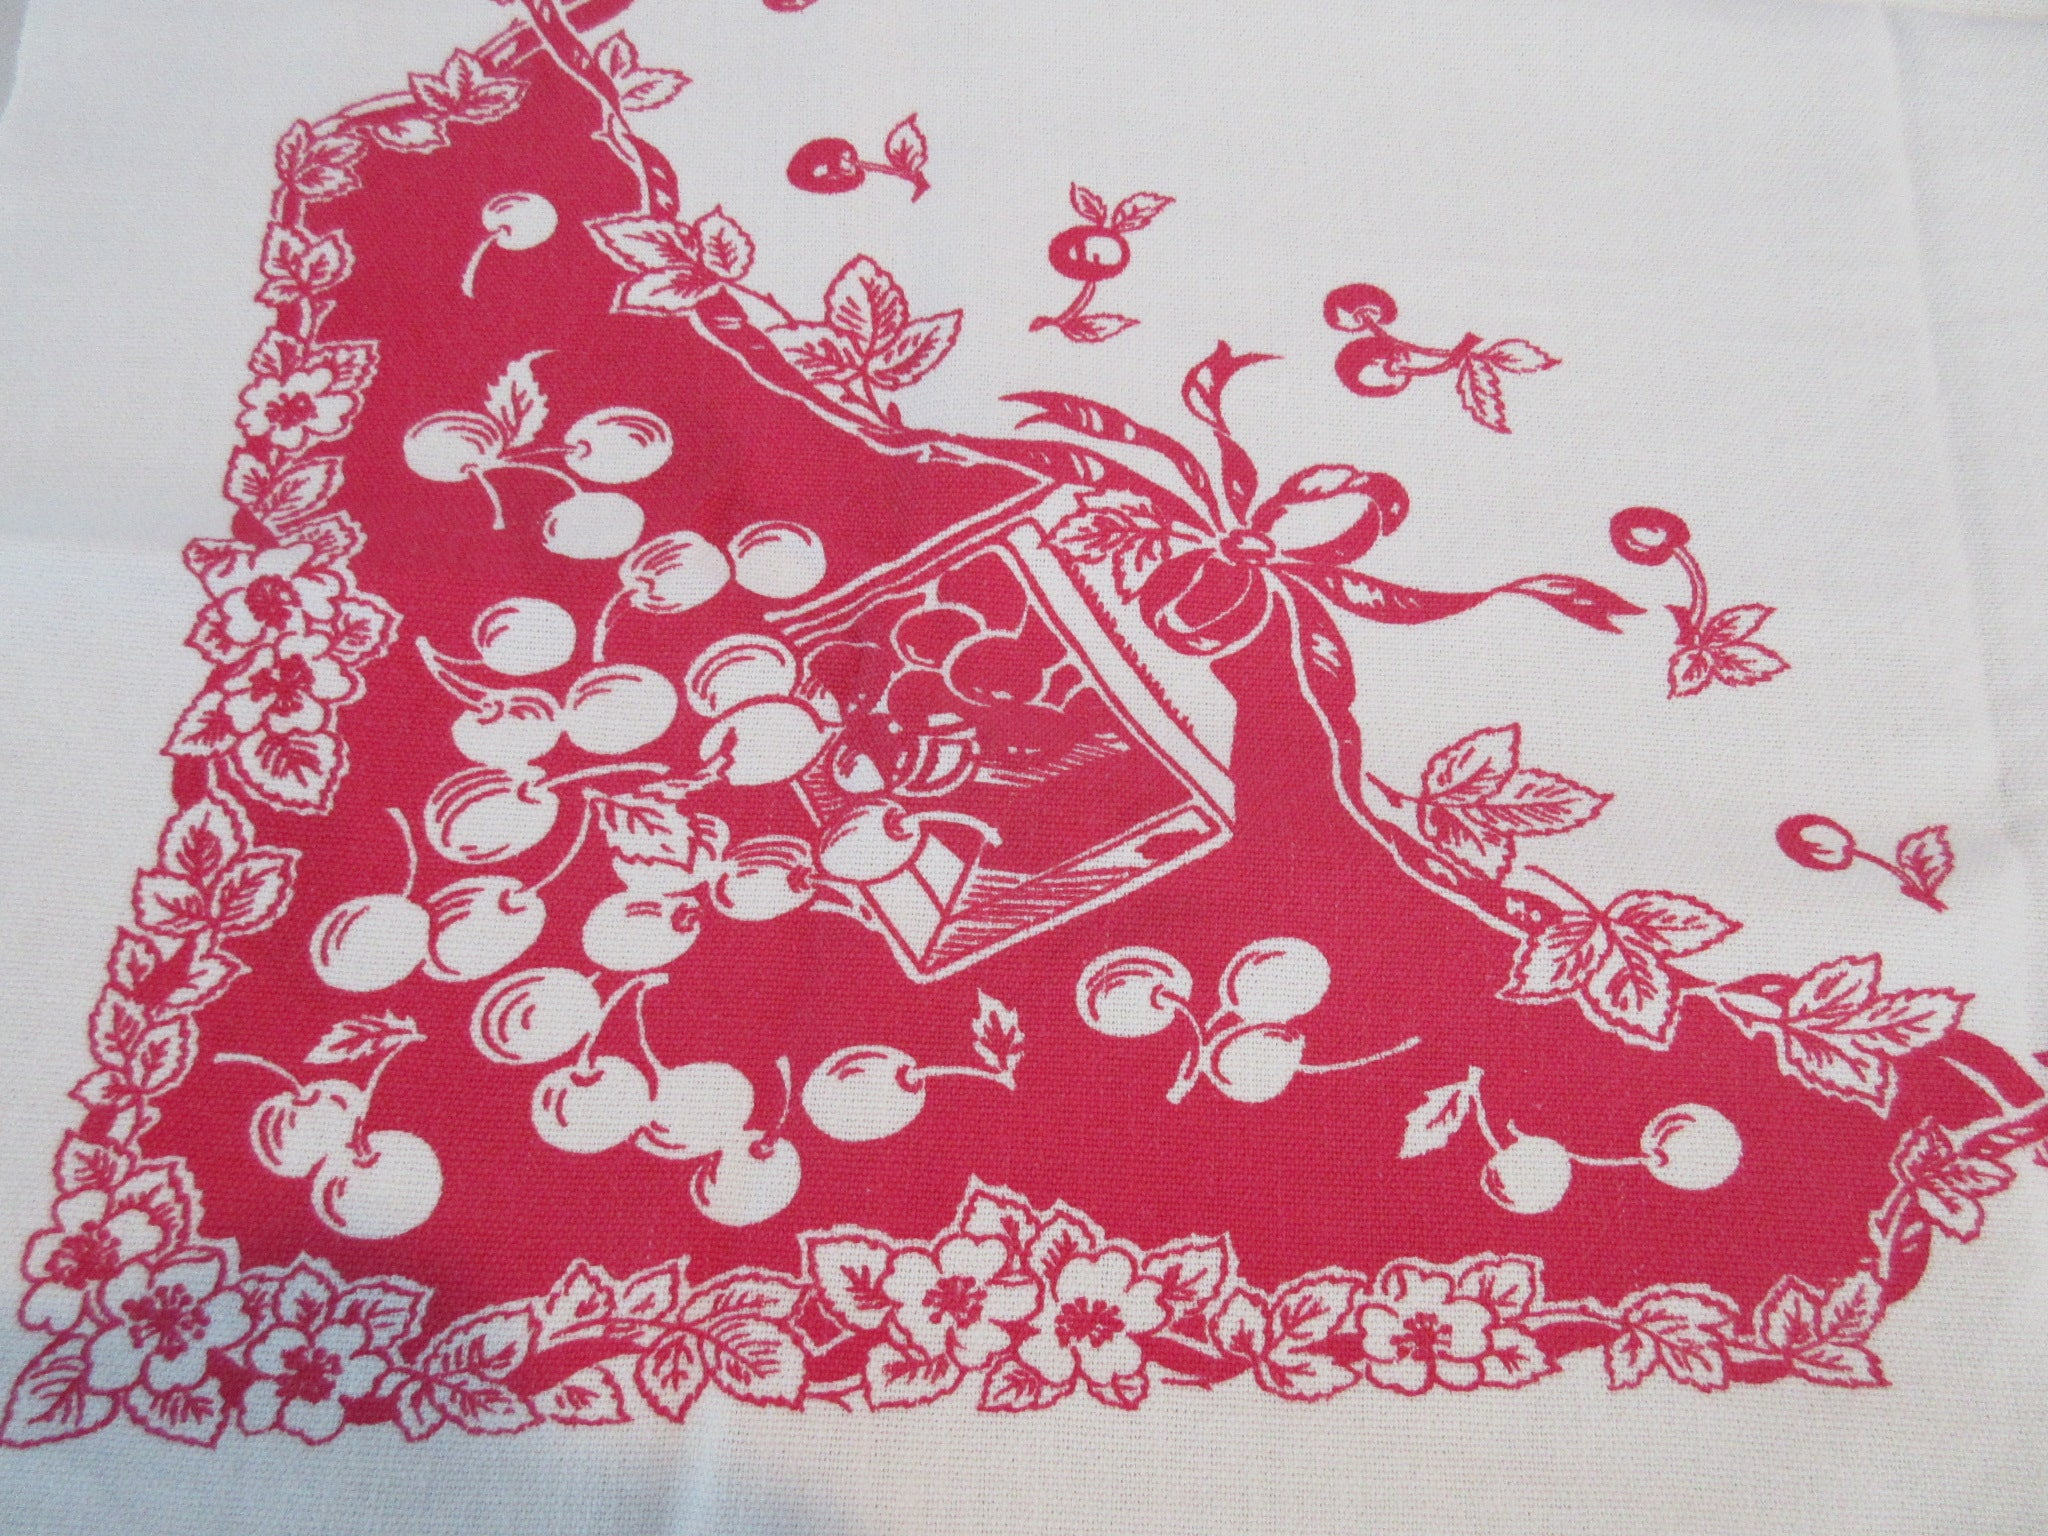 Reverse Printed Fruit on Red Topper Vintage Printed Tablecloth (36 X 29)